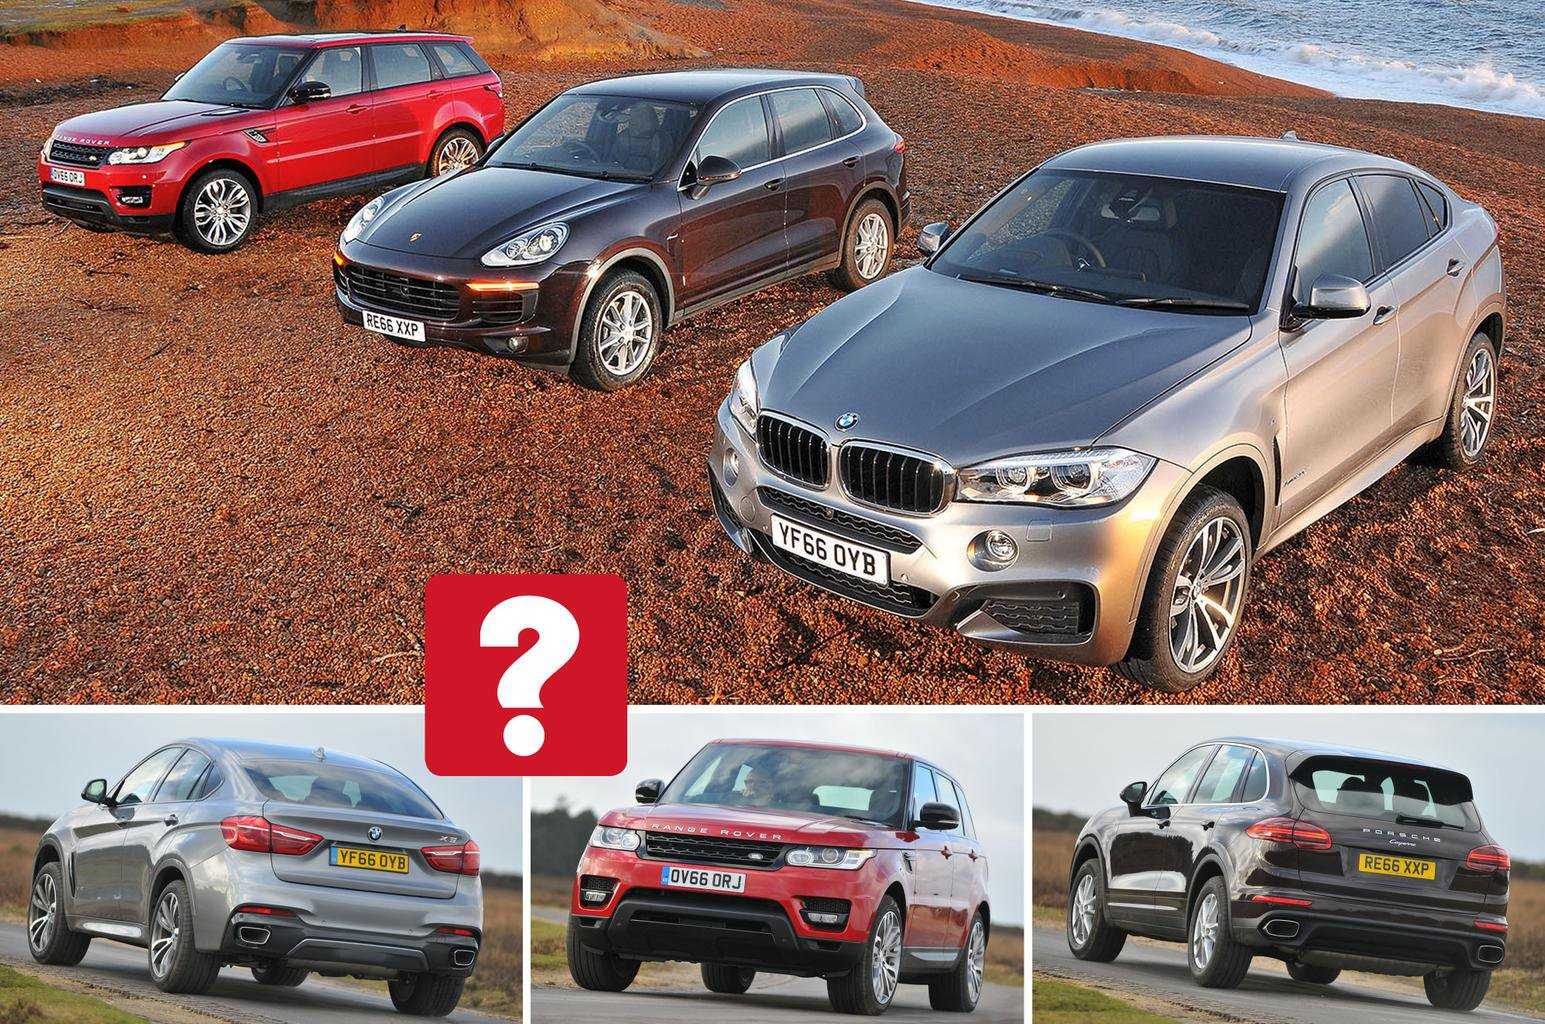 Bmw X6 Vs Porsche Cayenne Vs Range Rover Sport What Car